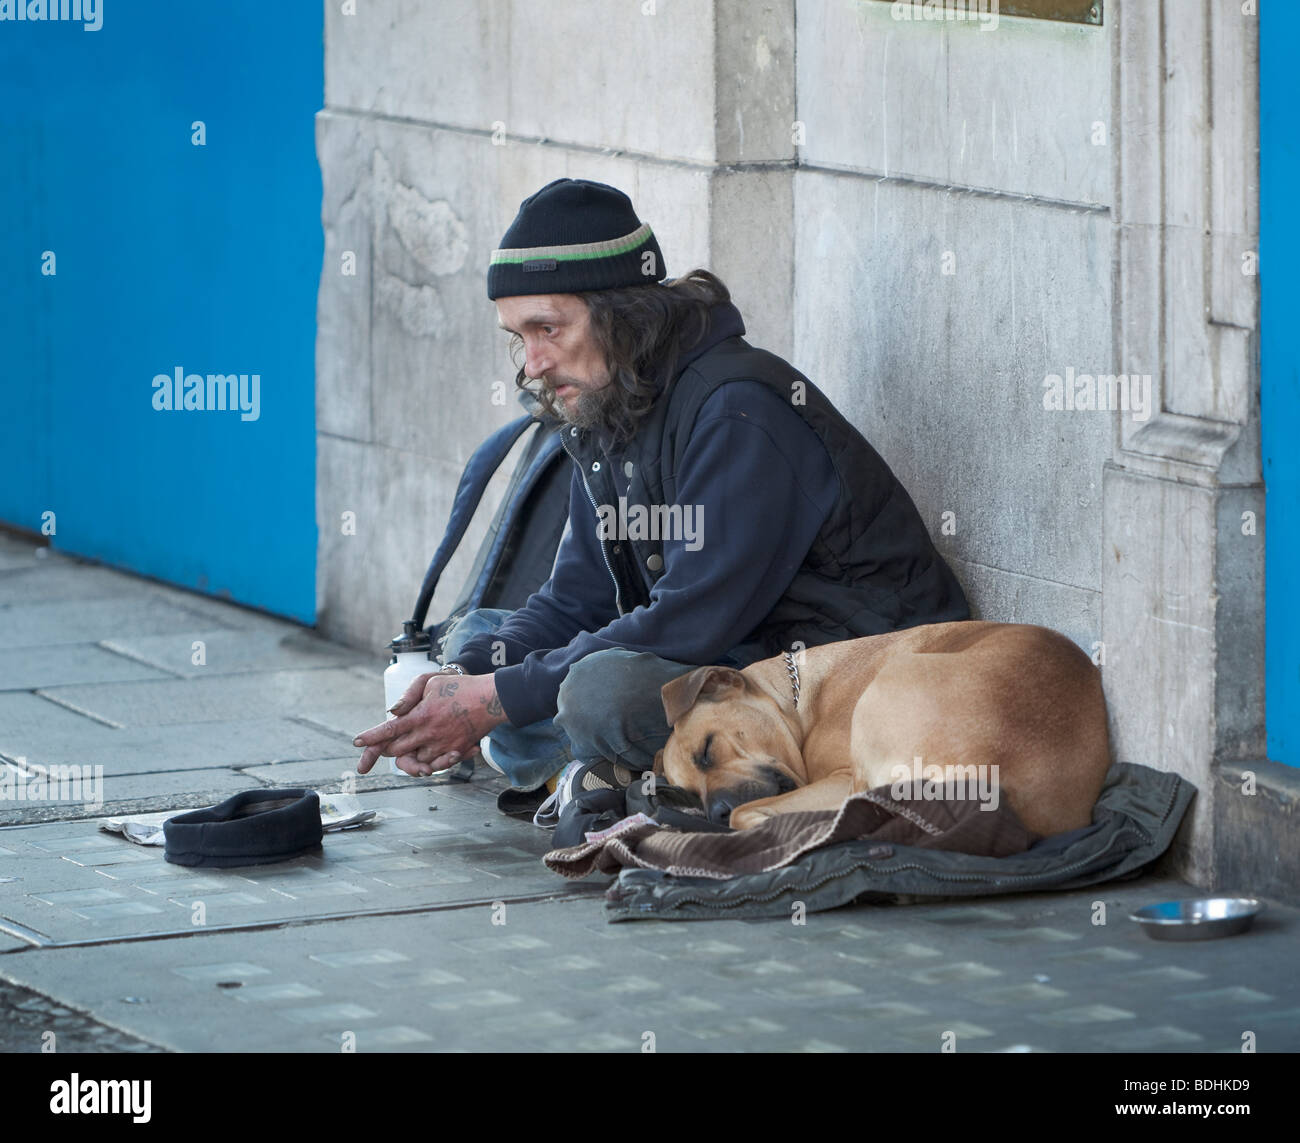 A homeless man begging with his dog,London,England - Stock Image